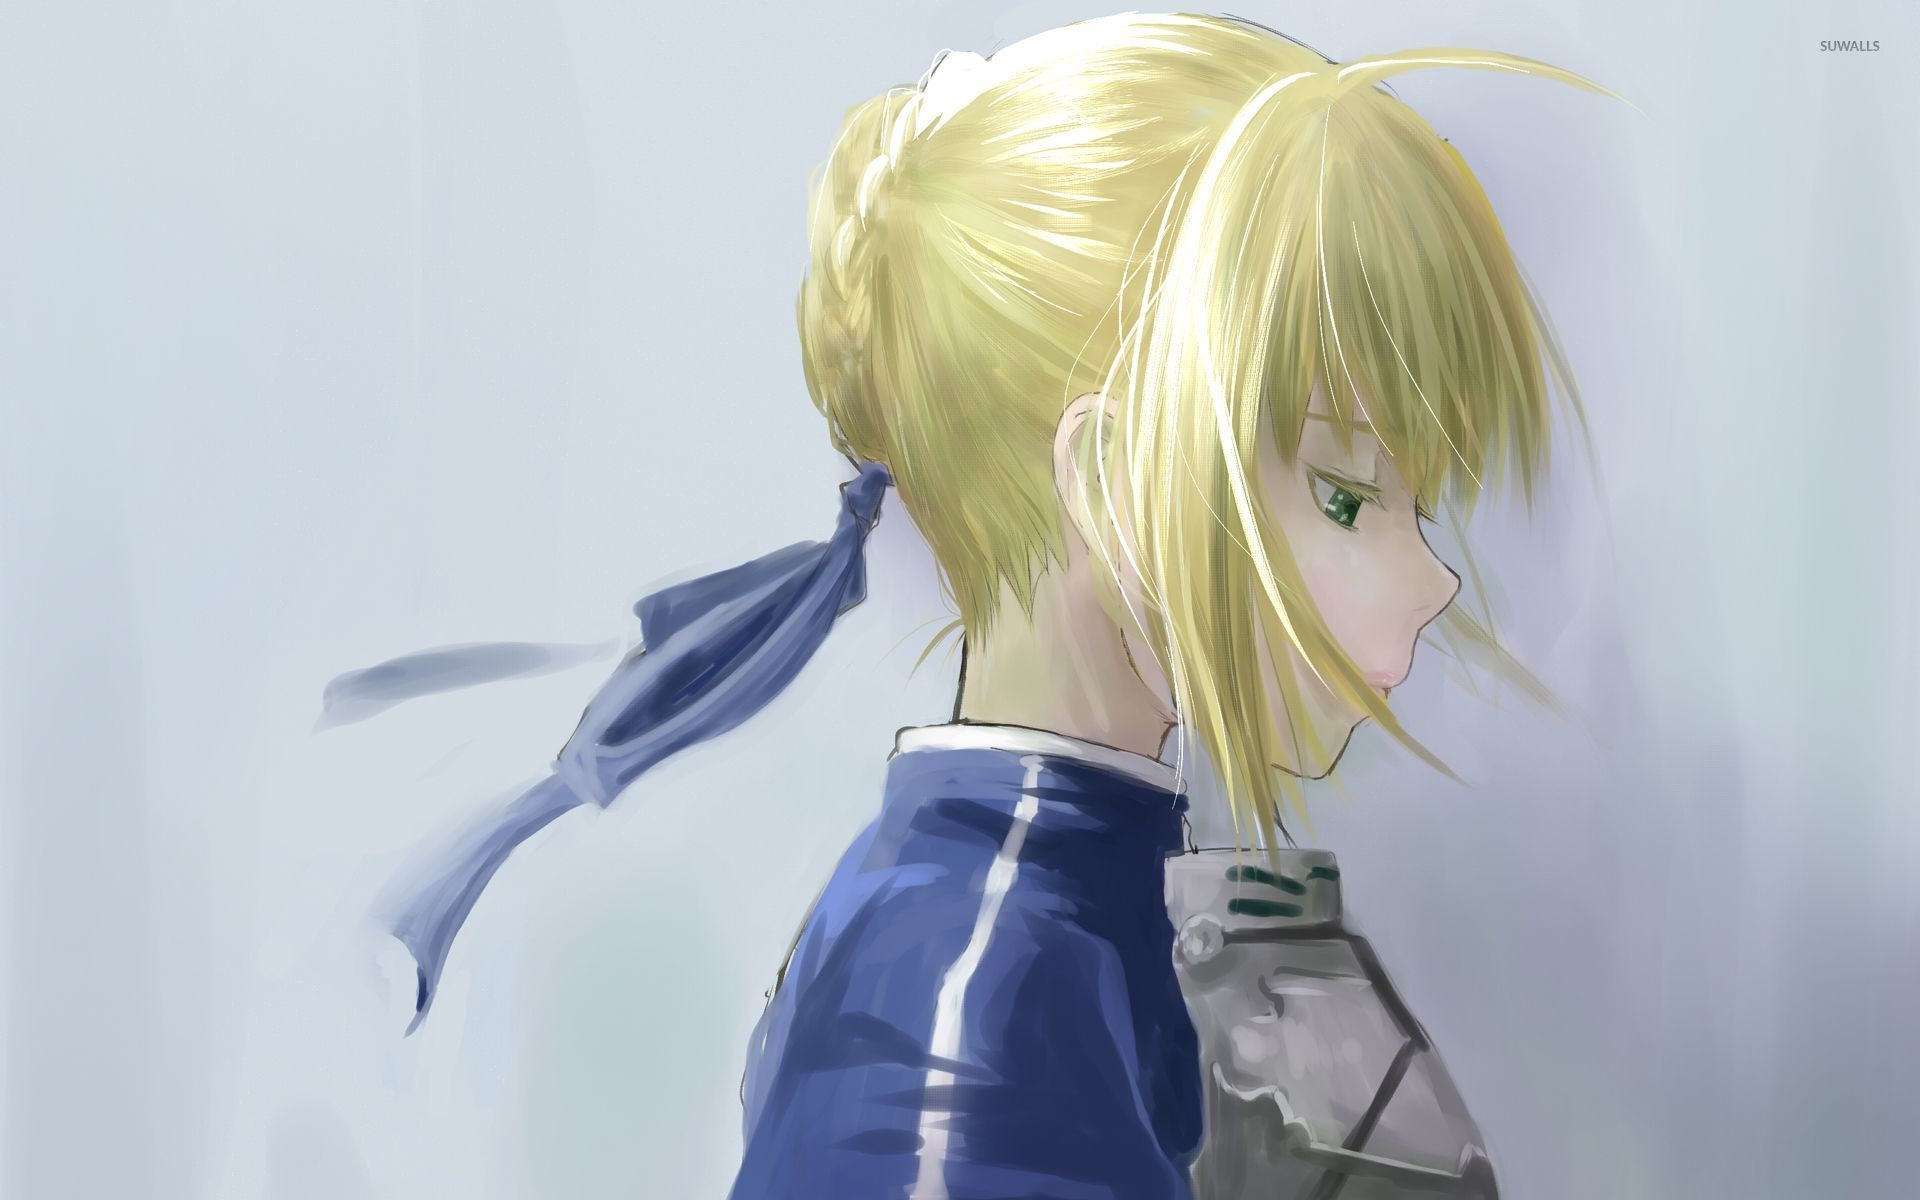 Sad Blonde Girl 2 Wallpaper Anime Wallpapers 53775